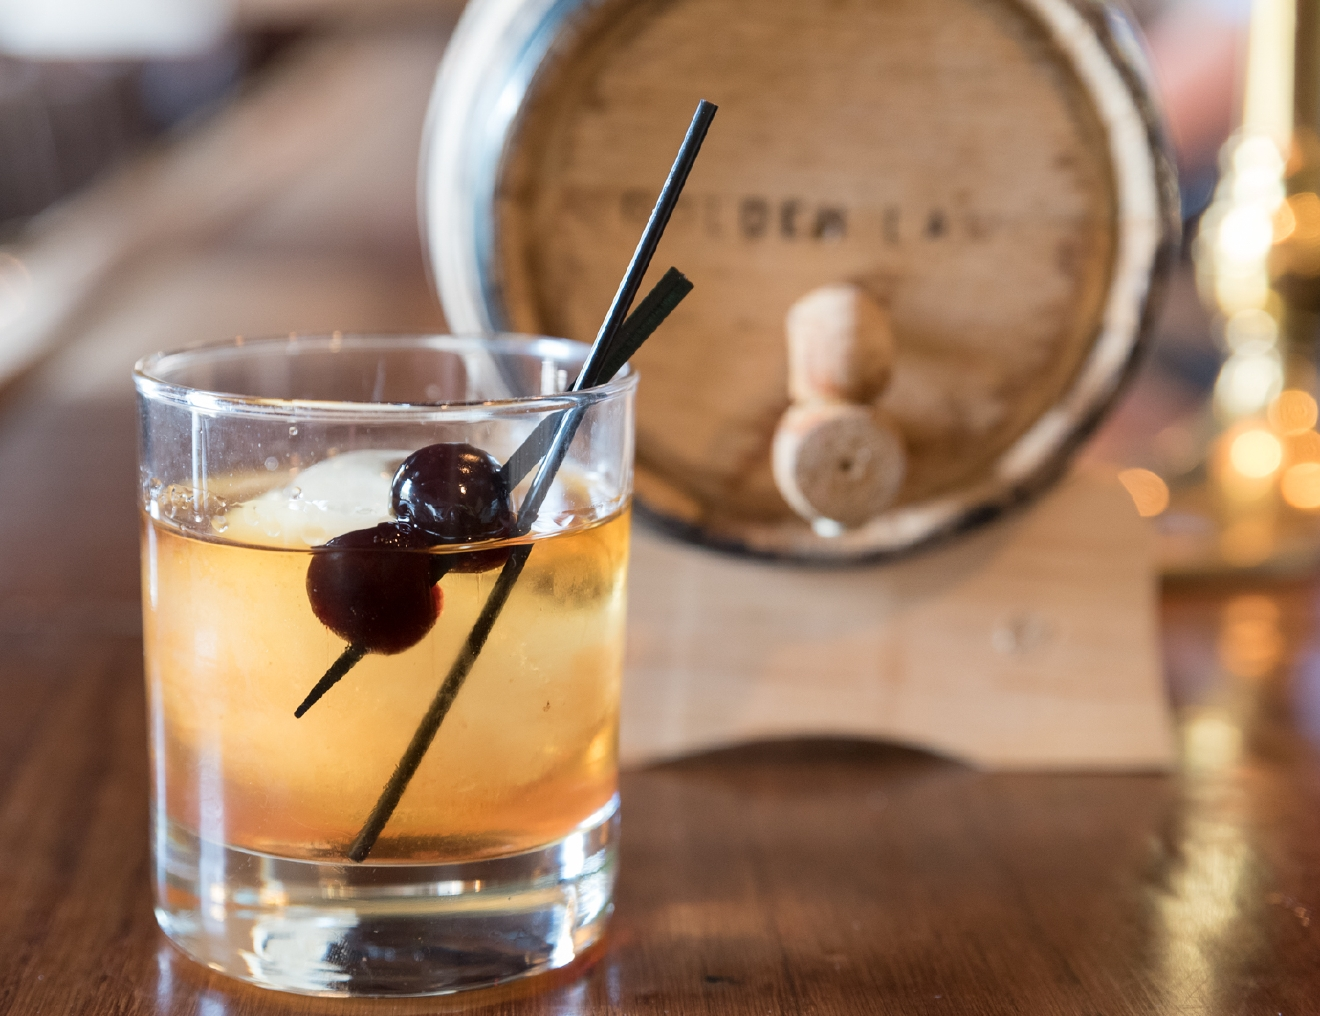 Manhattan with house-aged bourbon,  house-made bitters & amarina cherries / Image: Sherry Lachelle Photography